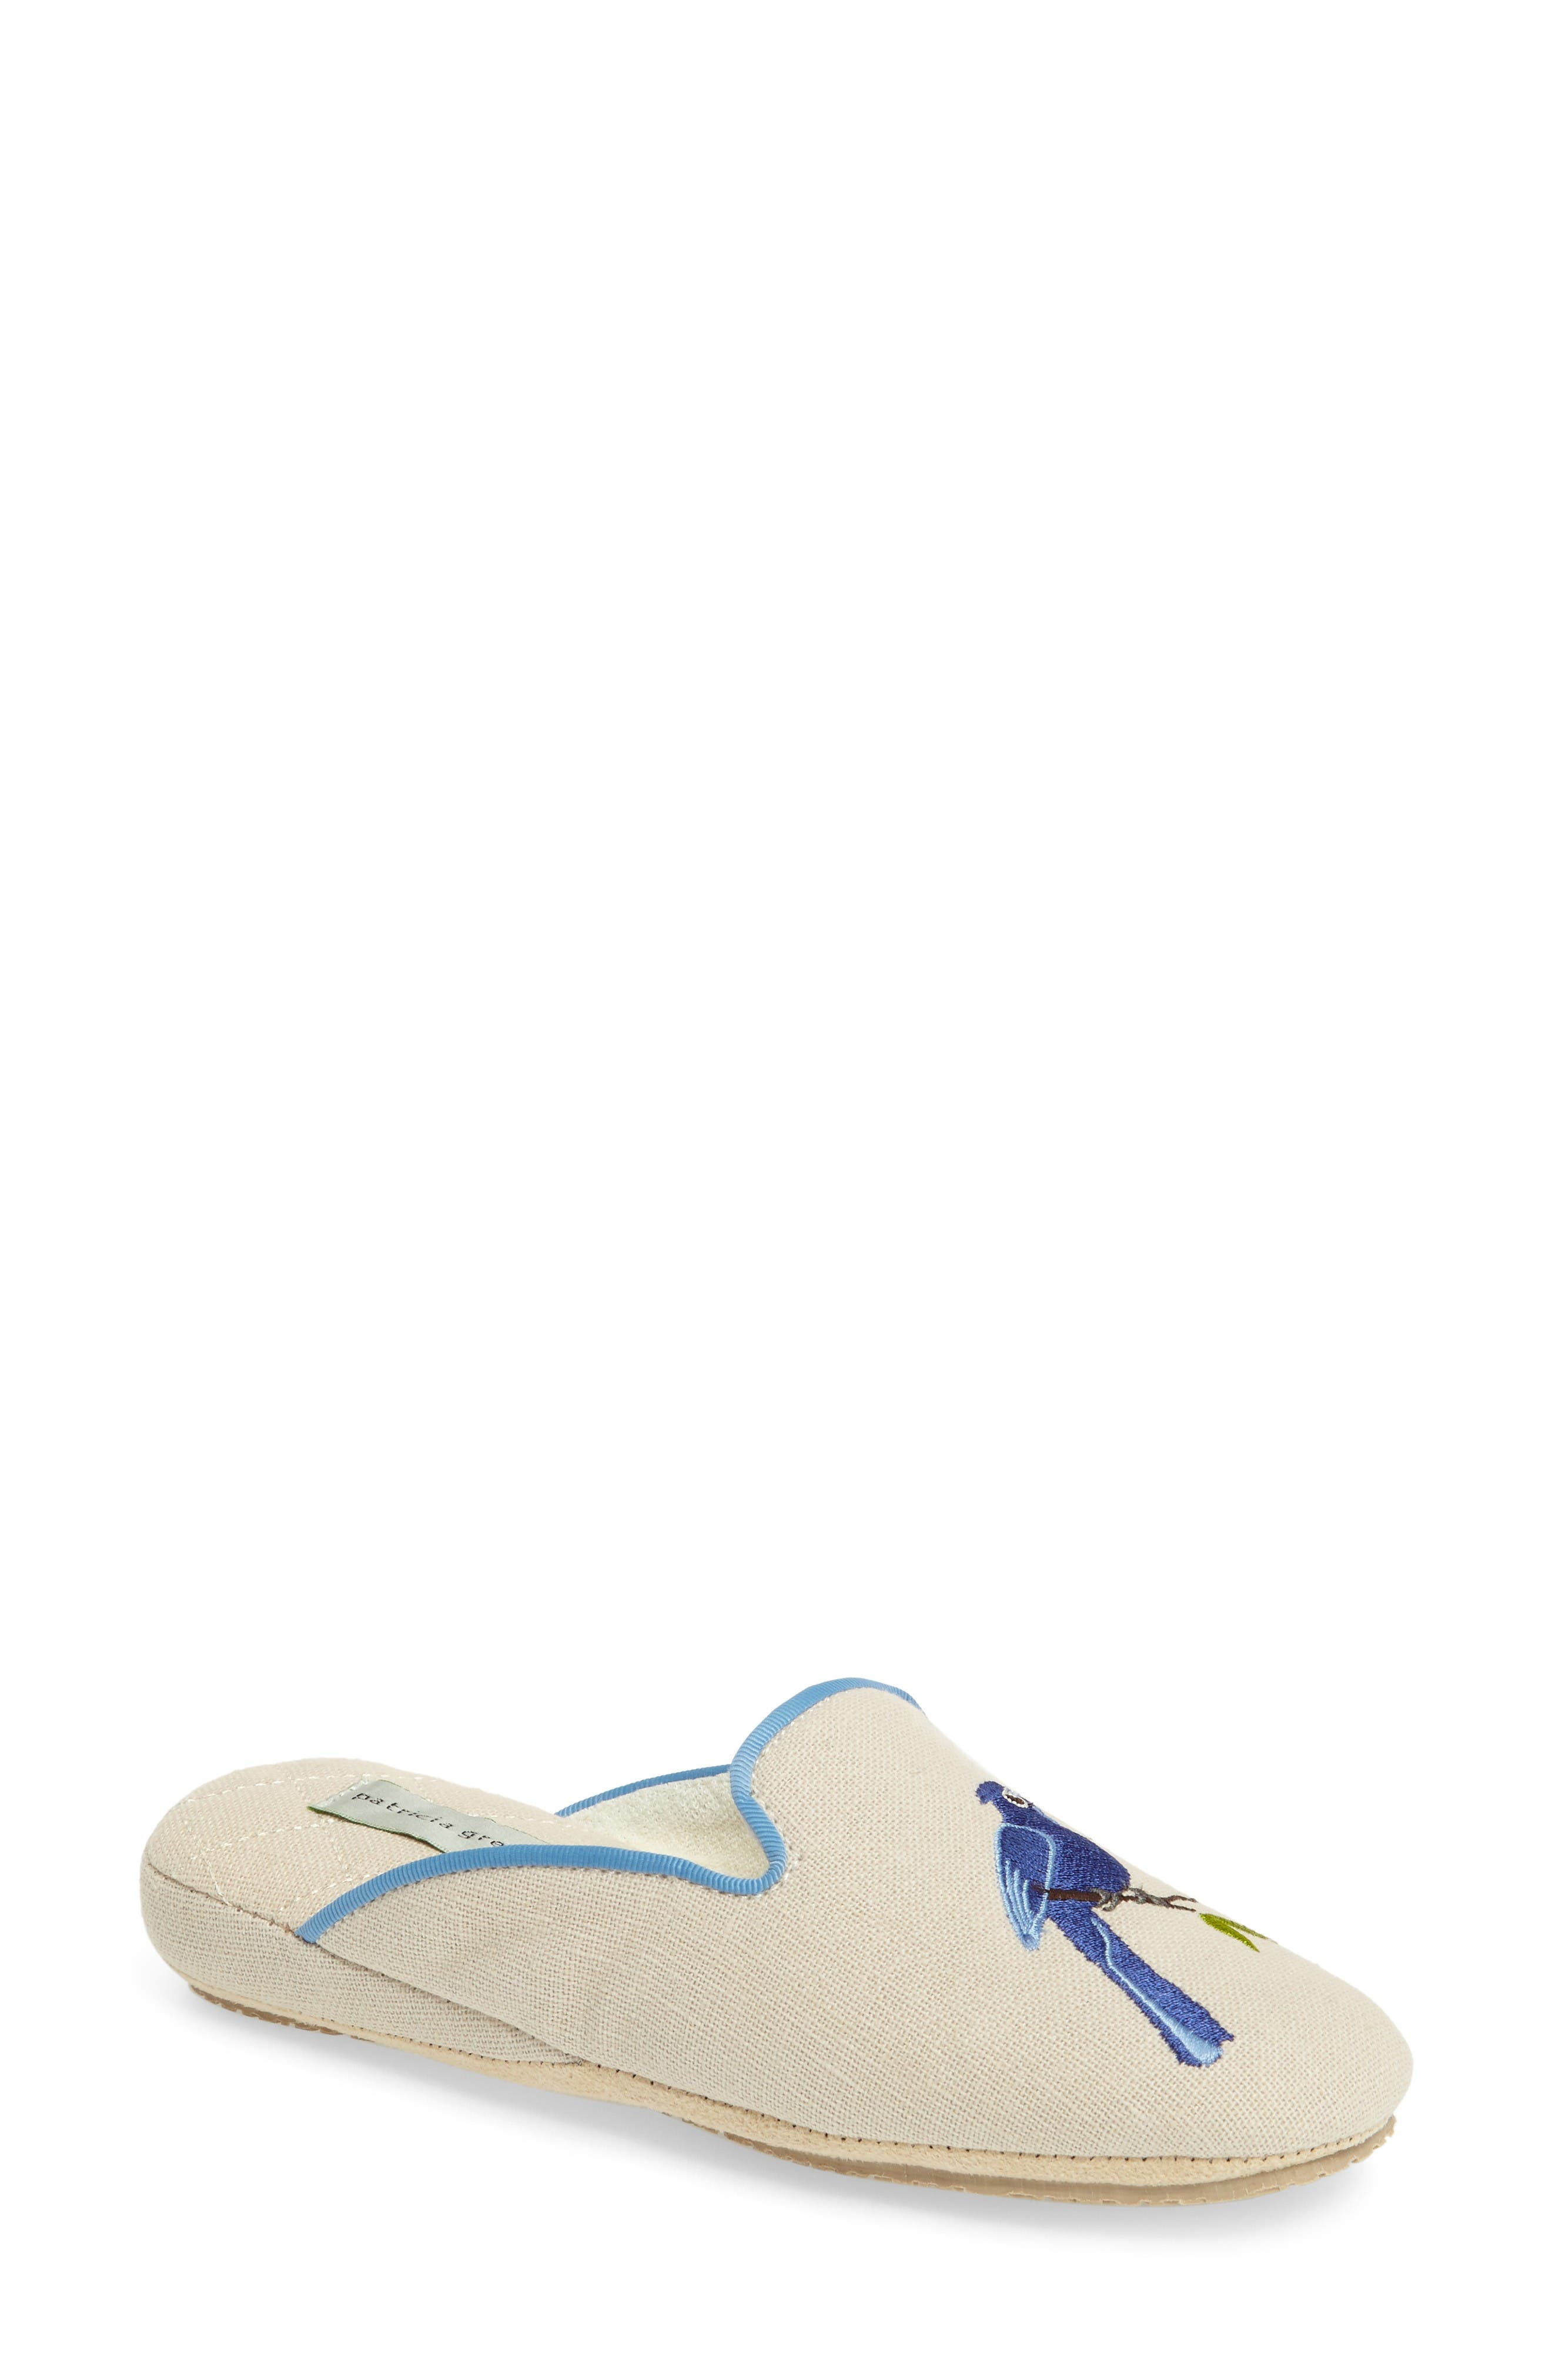 Bluebird Embroidered Slipper,                         Main,                         color, Natural Fabric